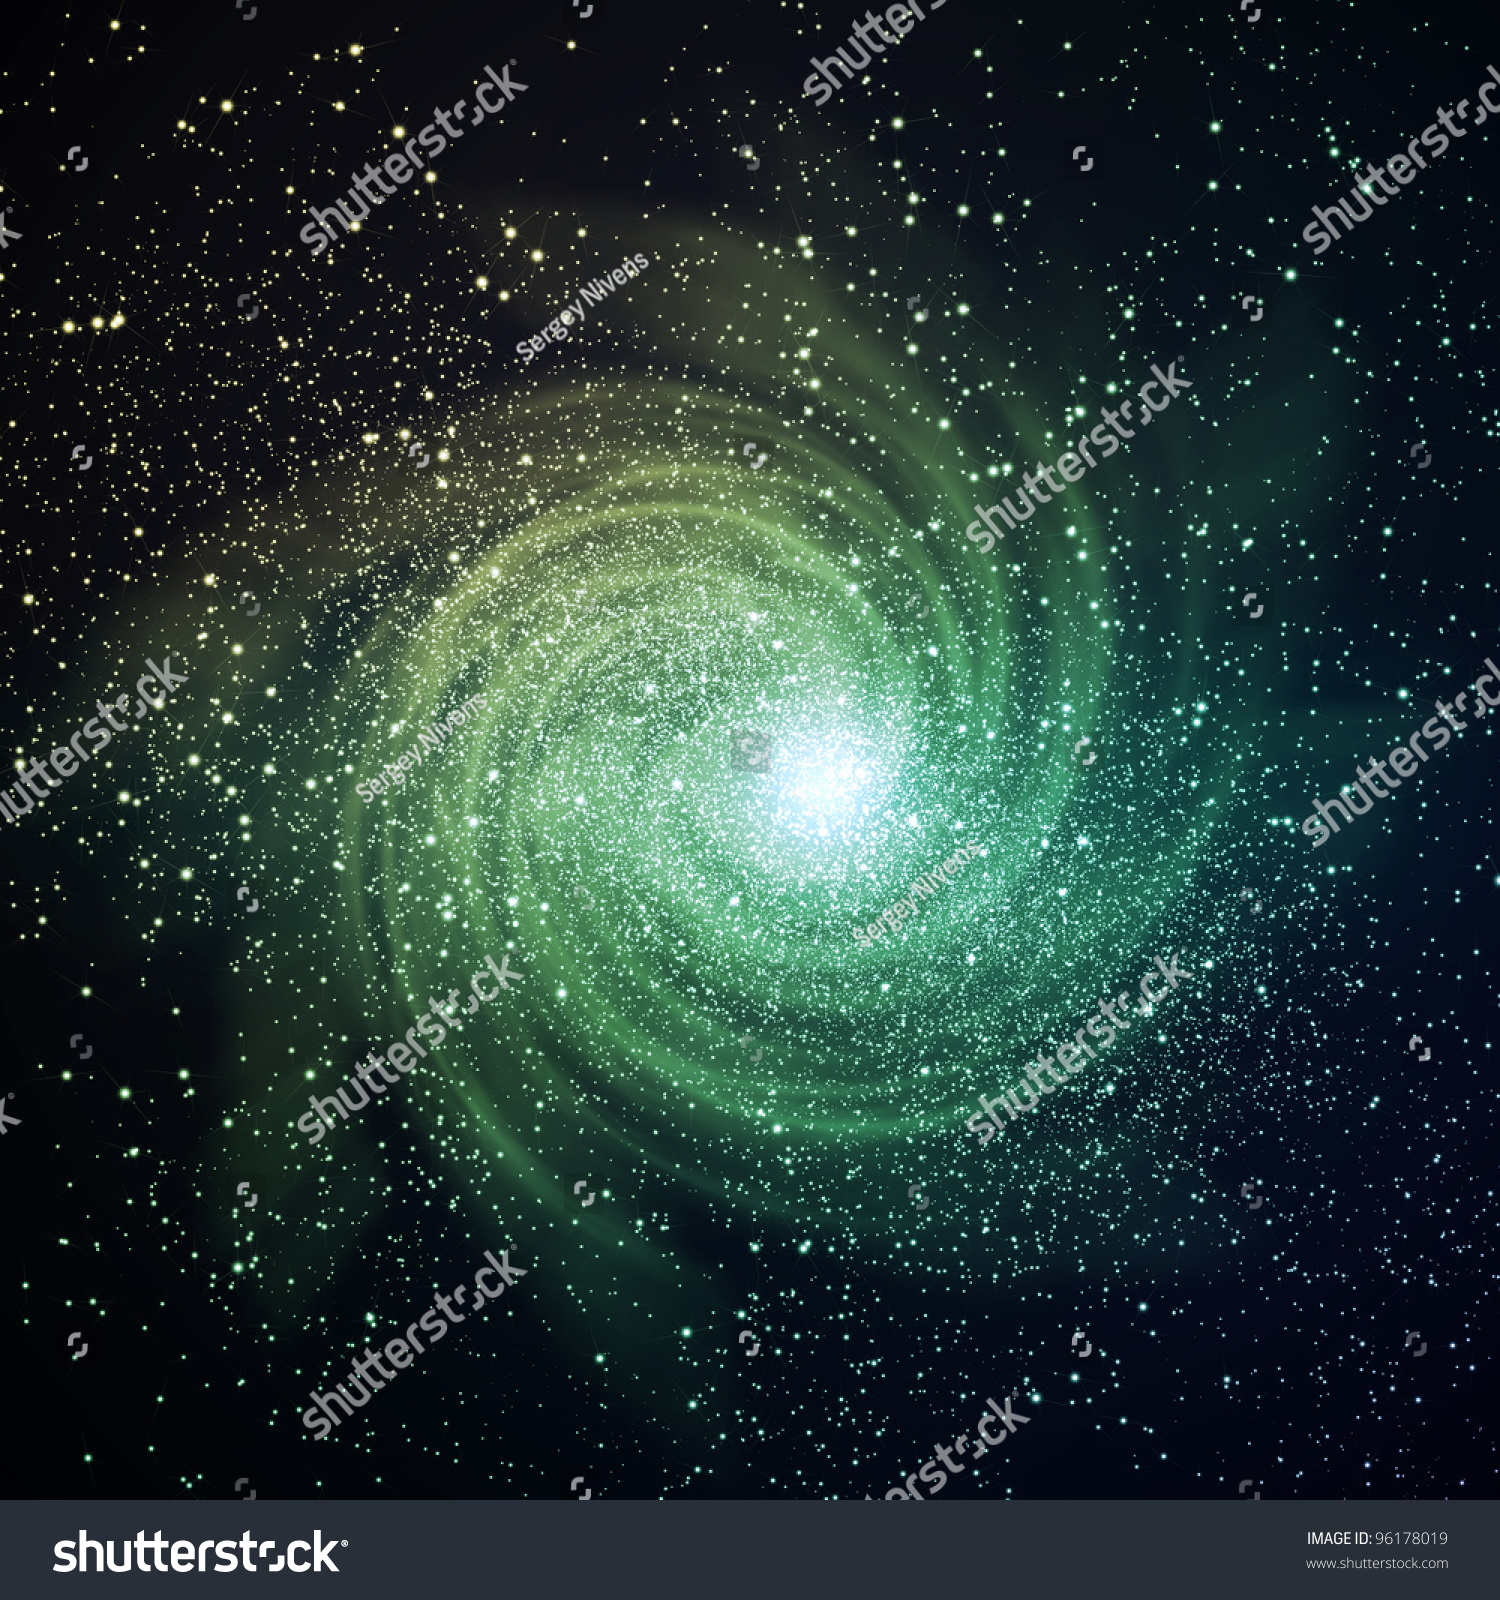 image glowing galaxy against black space stock celestial being logo png Celestial Beings On Earth